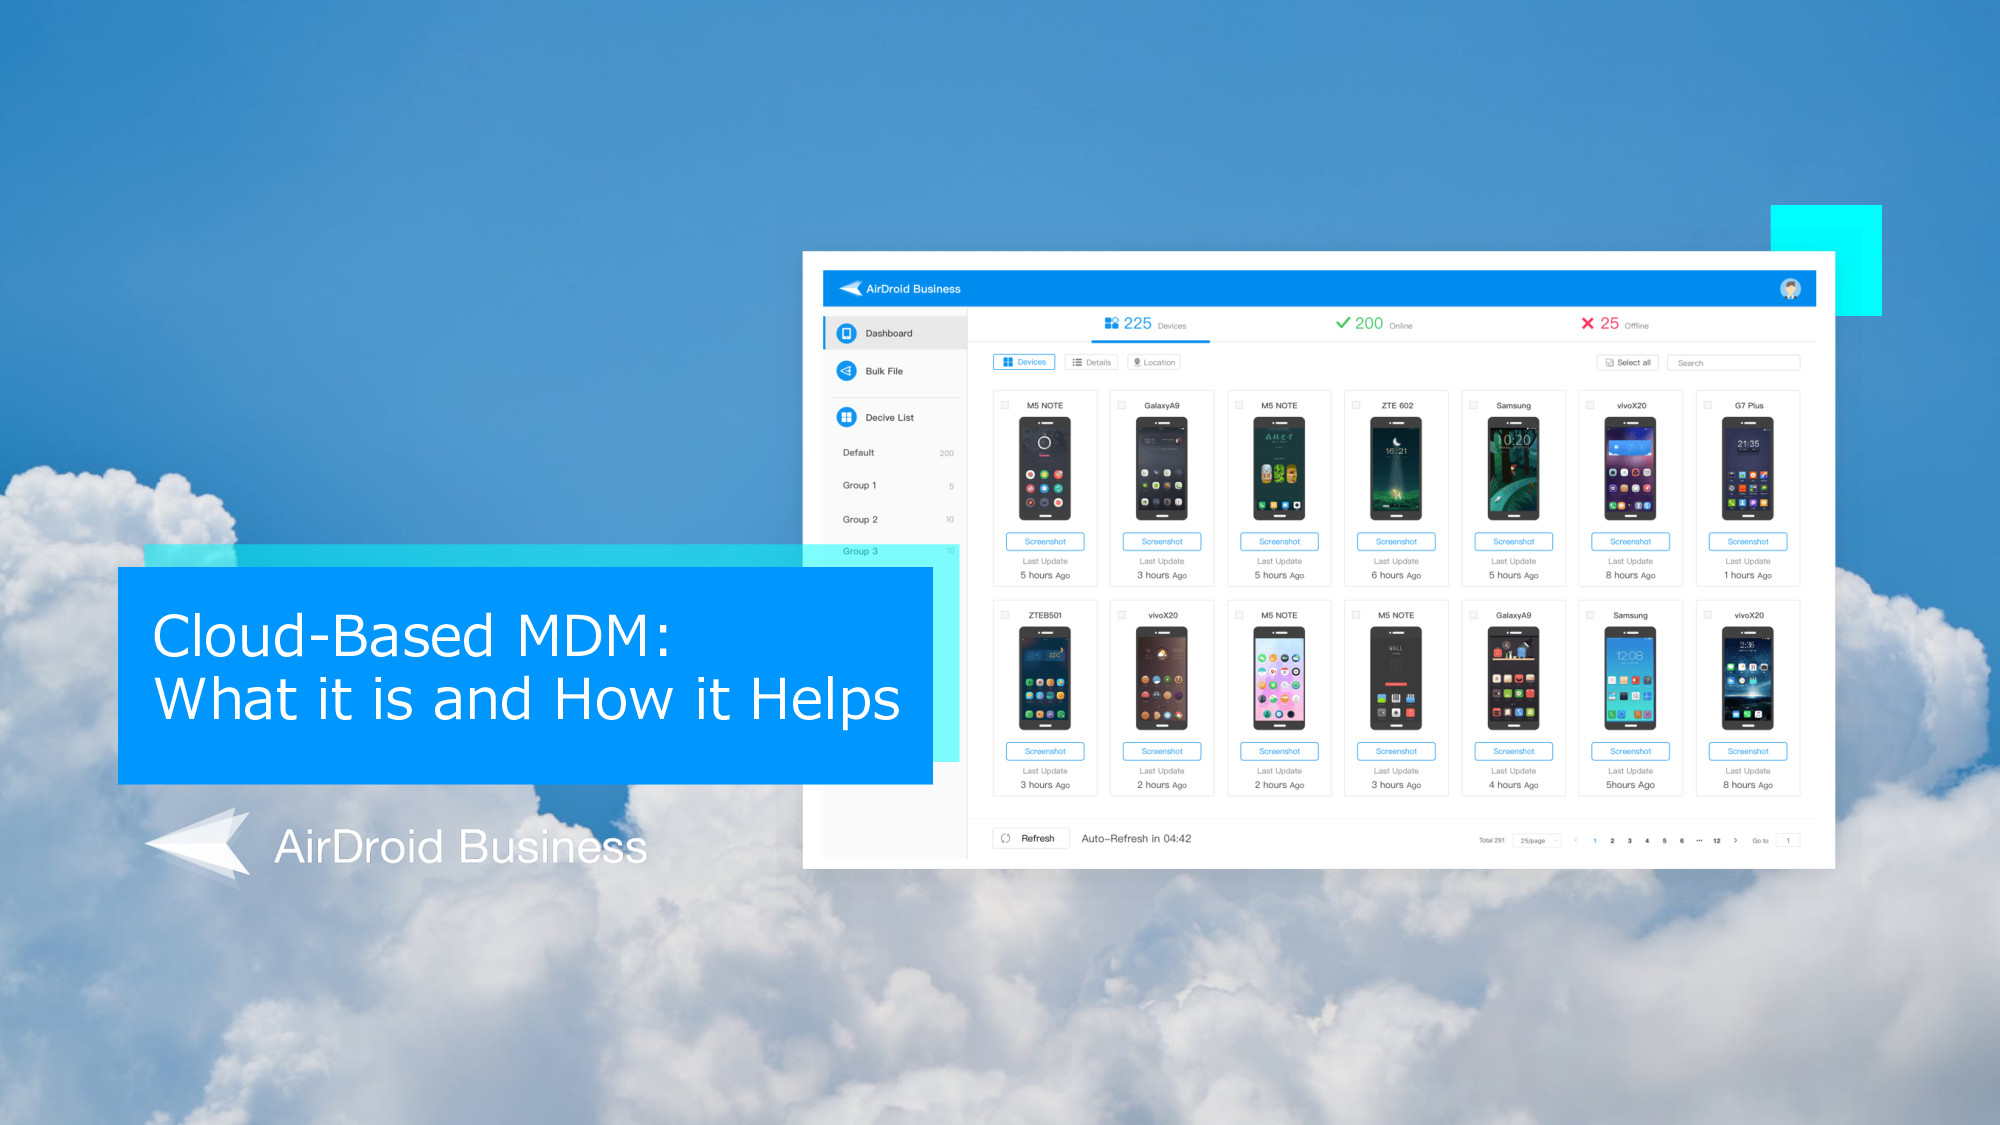 AirDroid Business Cloud-based MDM Solution